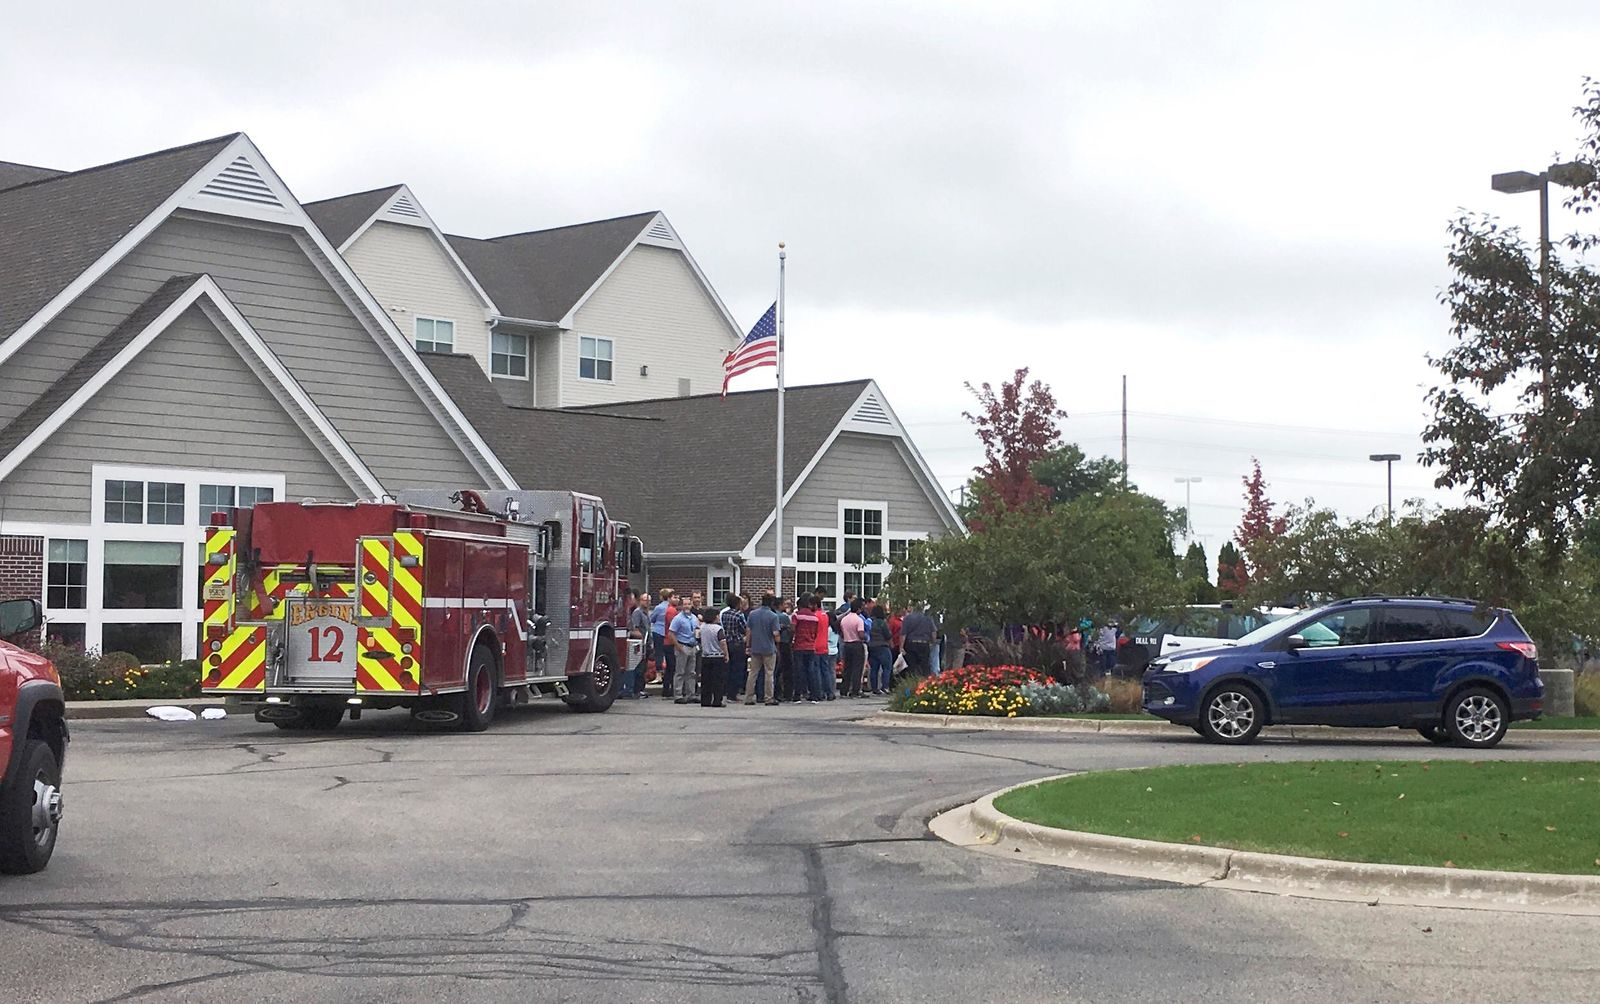 A fire truck and people evacuated are gathered at a hotel near the scene after a shooting was reported at a software company in Middleton, Wis., Wednesday, Sept. 19, 2018. (AP Photo/Todd Richmond)